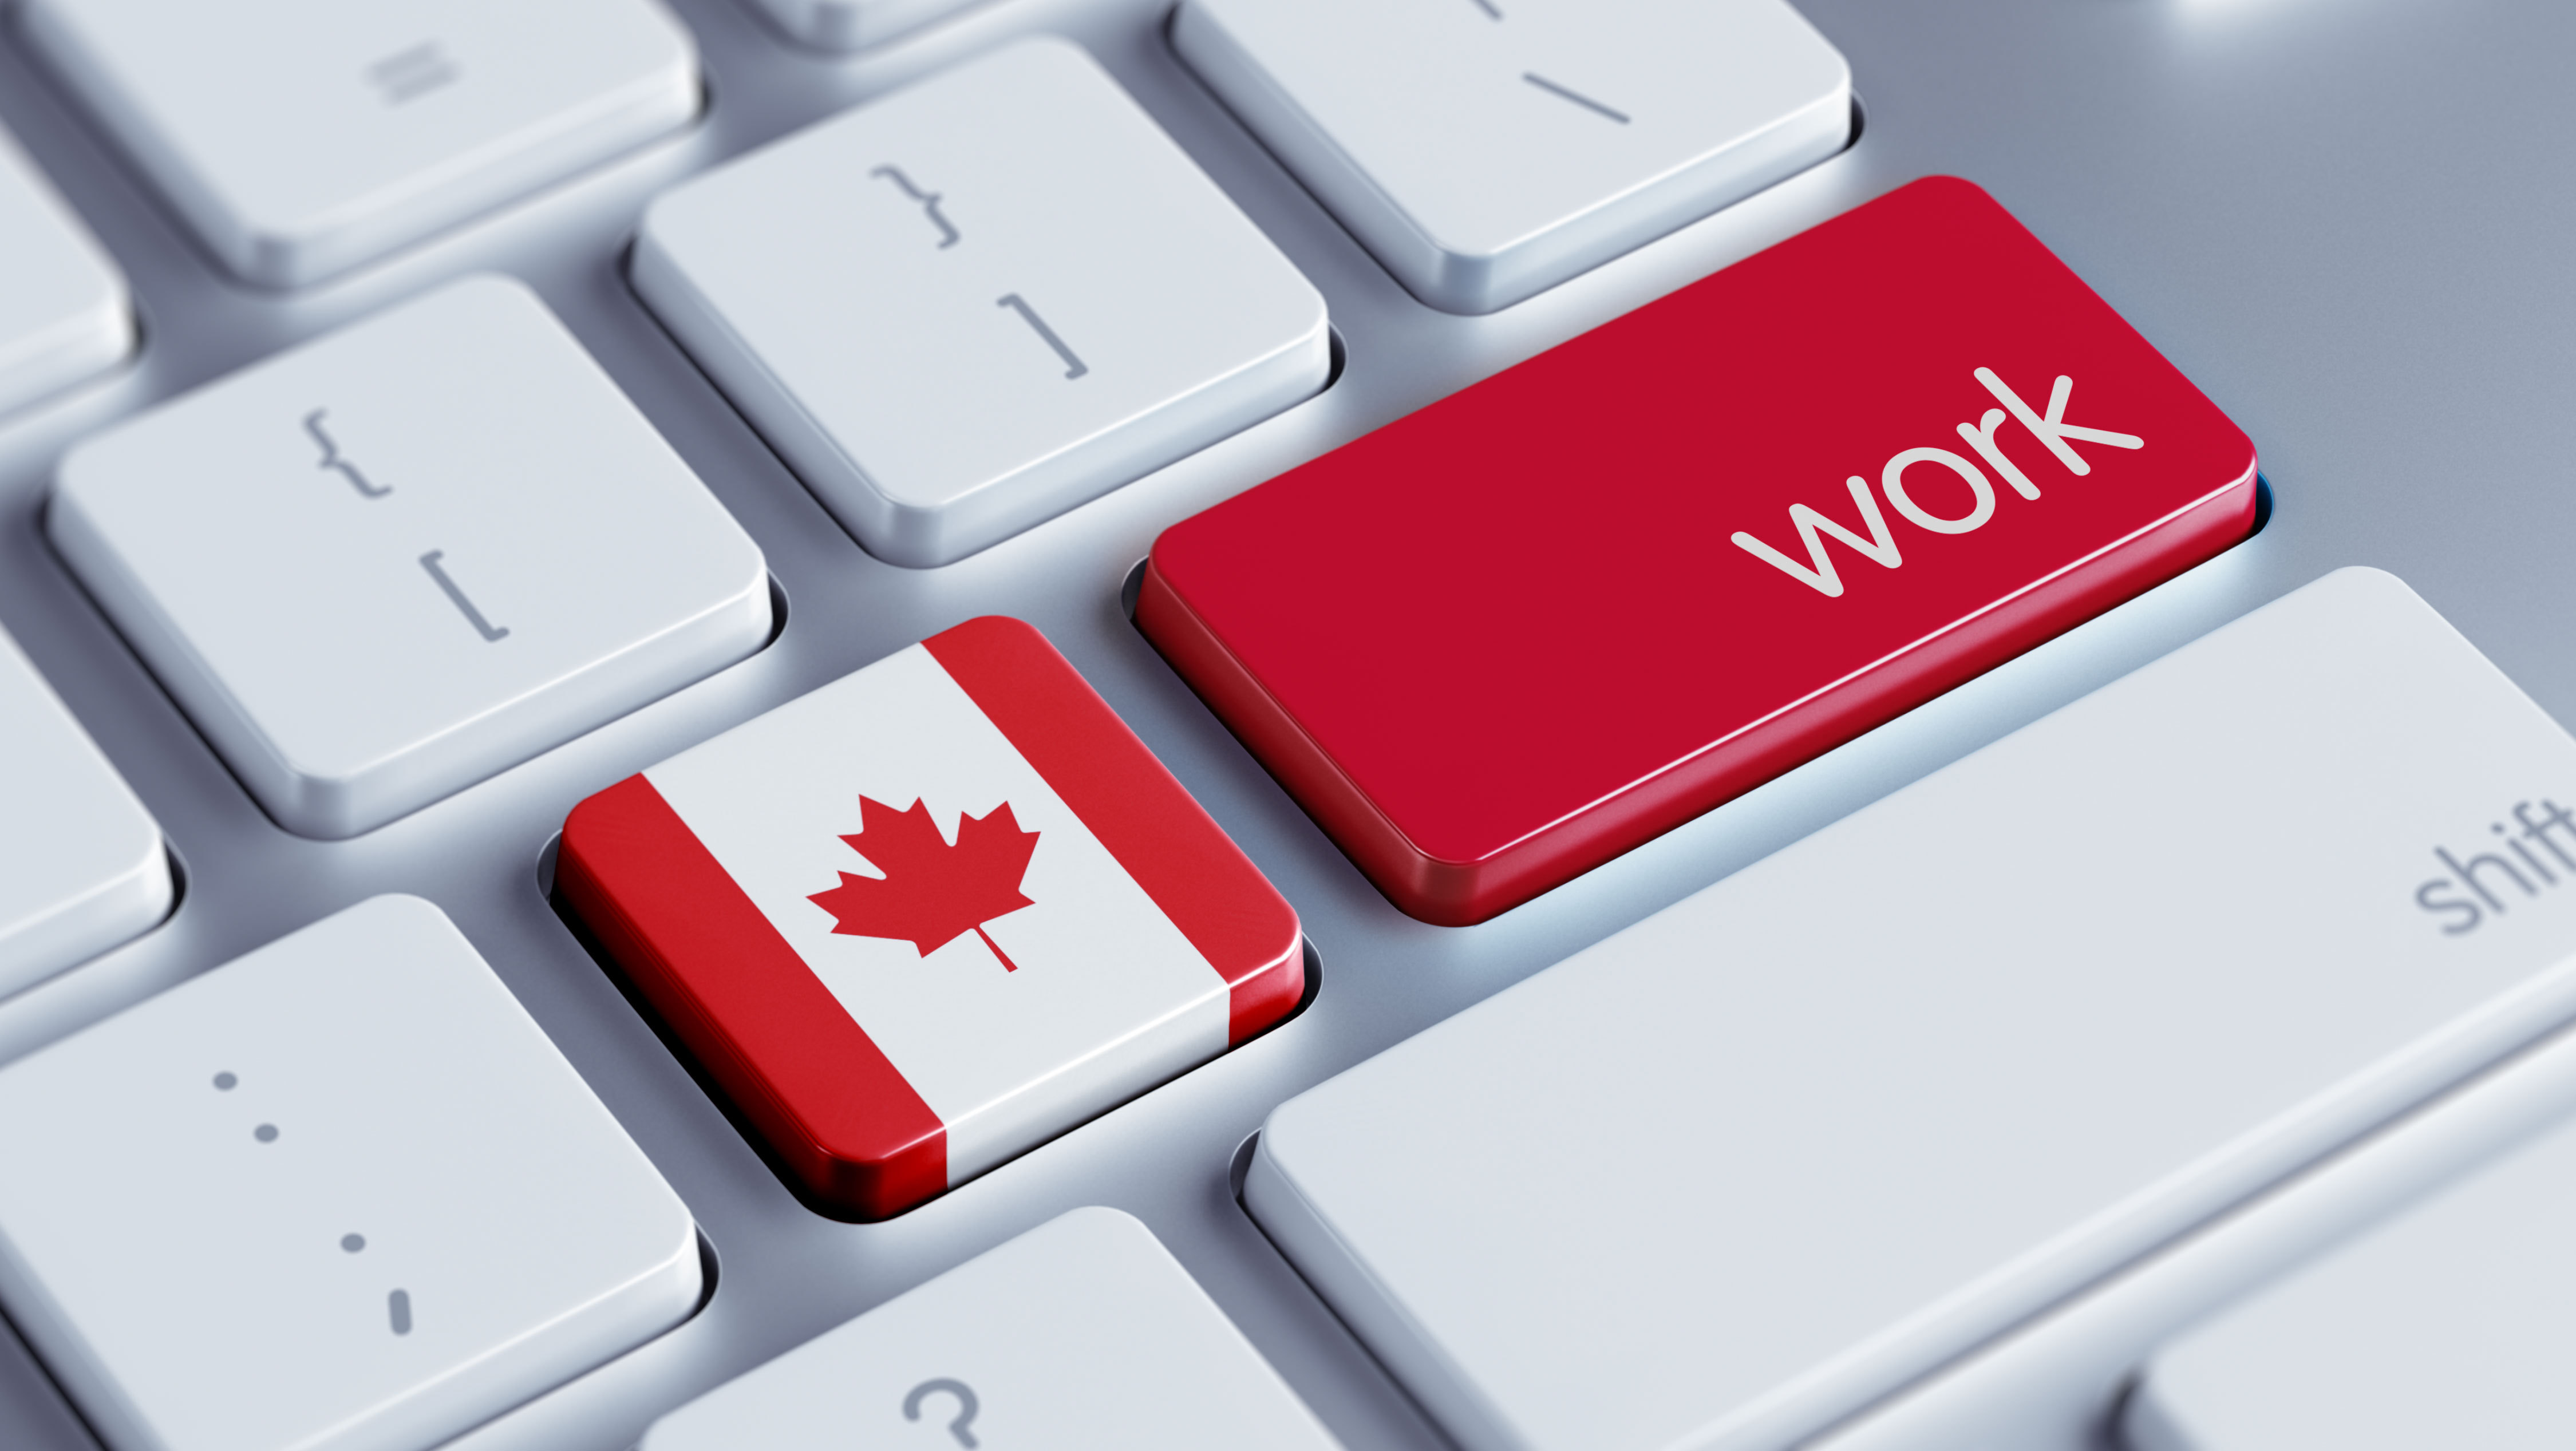 Free Secrets On How To Find An Employer, Immigrate And Work As A Caregiver In Canada